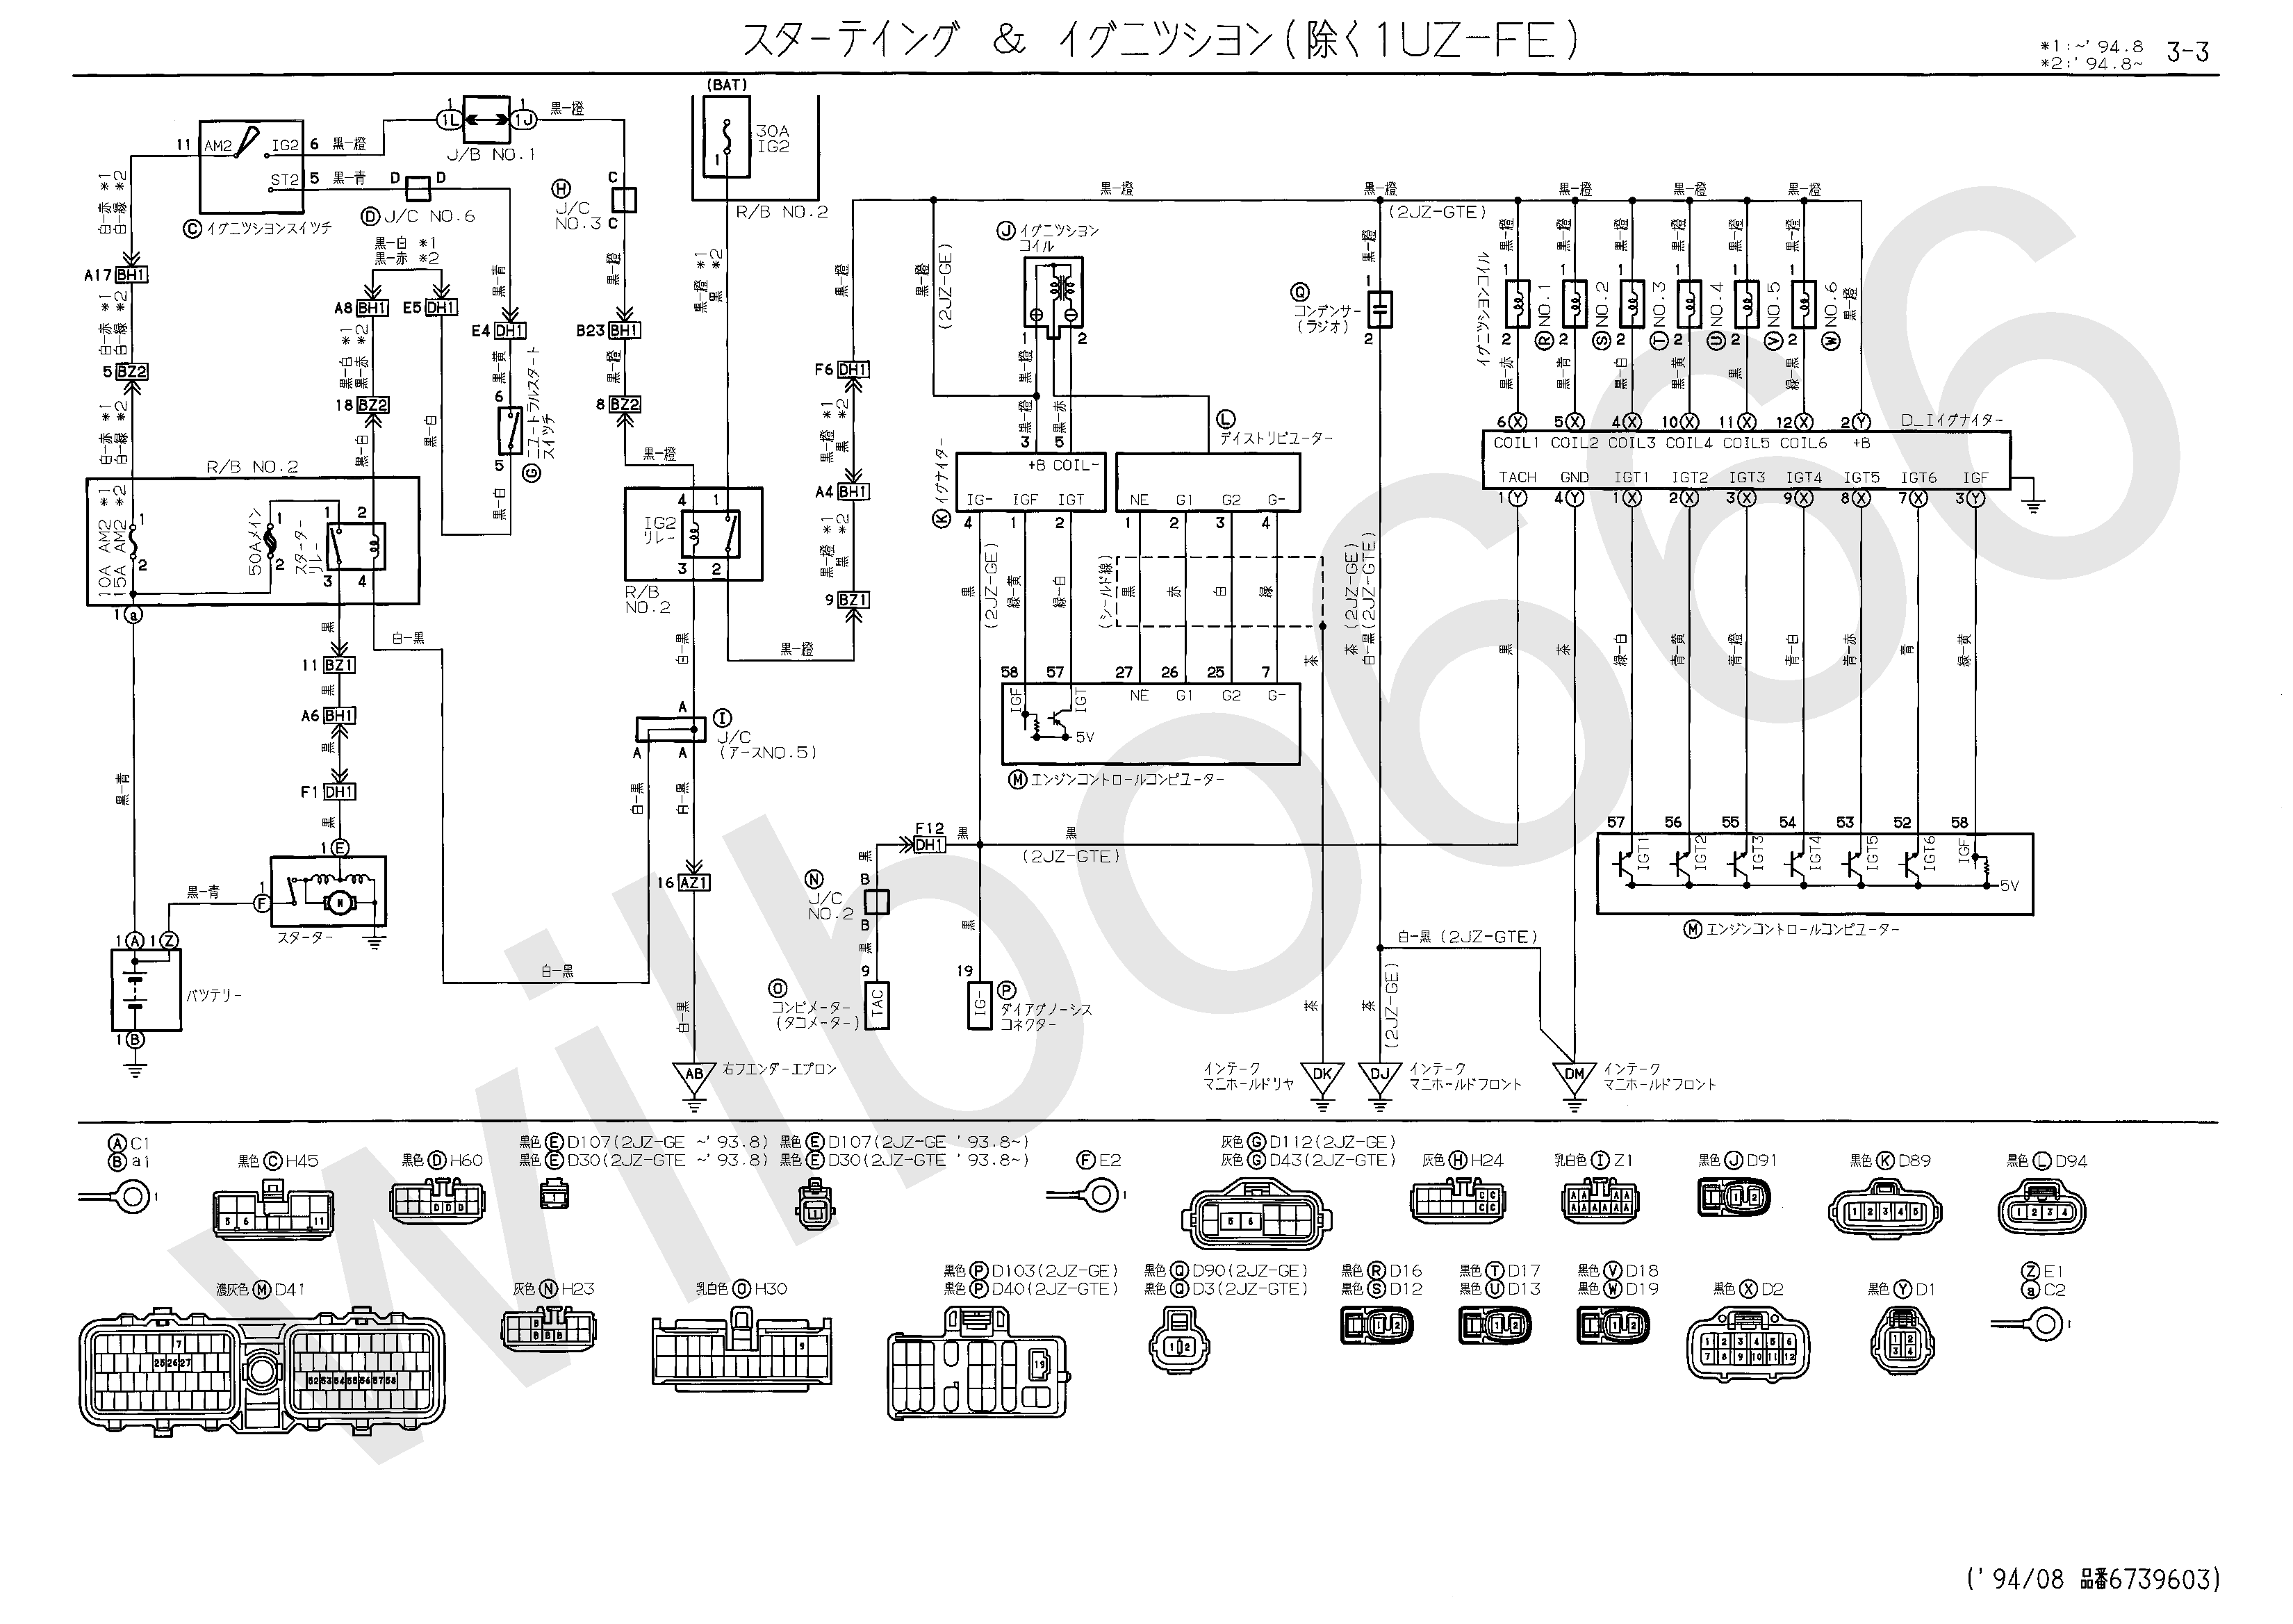 JZS14%23%2C UZS14%23 Electrical Wiring Diagram 6739604 3 3?resize\\\\\\\\\\\\\\\\\\\\\\\\\\\\\\\\\\\\\\\\\\\\\\\\\\\\\\\\\\\\\\\\\\\\\\\\\\\\\\\\\\\\\\\\\\\\\\\\\\\\\\\\\\\\\\\\\\\\\\\\\\\\\\\\\\\\\\\\\\\\\\\\\\\\\\\\\\\\\\\\\\\\\\\\\\\\\\\\\\\\\\\\\\\\\\\\\\\\\\\\\\\\\\\\\\\\\\\\\\\\\\\\\\\\\\\\\\\\\\\\\\\\\\\\\\\\\\\\\\\\\\\\\\\\\\\\\\\\\\\\\\\\\\\\\\\\\\\\\\\\\\\\\\\\\\\\\\\\\\\\\\\\\\\\\\\\\\\\\\\\\\\\\\\\\\\\\\\\\\\\\\\\\\\\\\\\\\\\\\\\\\\\\\\\\\\\\\\\\\\\\\\\\\\\\\\\\\\\\\\\\\\\\\\\\\\\\\\\\\\\\\\\\\\\\=665%2C471 rb26 wiring diagram rb26 wiring harness diagram \u2022 wiring diagrams little flying fighter alarm wiring diagram at mifinder.co